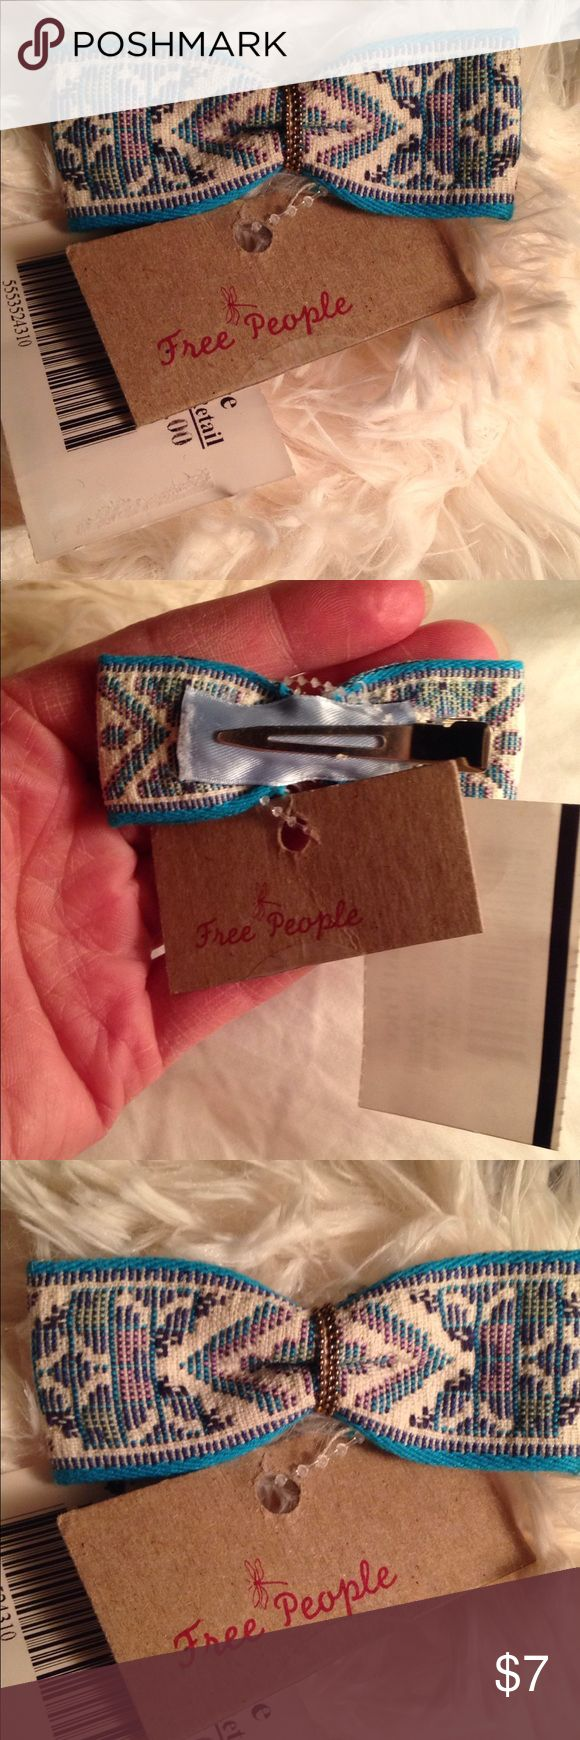 Free People Embroidered Bow Pin Curl Clip Barrette 45 mm single prong alligator Clip. Great for holding back wisps of hair off your child's face. I have 2 of this turquoise Clip. Other colors: dusty pink, navy, periwinkle, light green, linen/cream Free People Accessories Hair Accessories